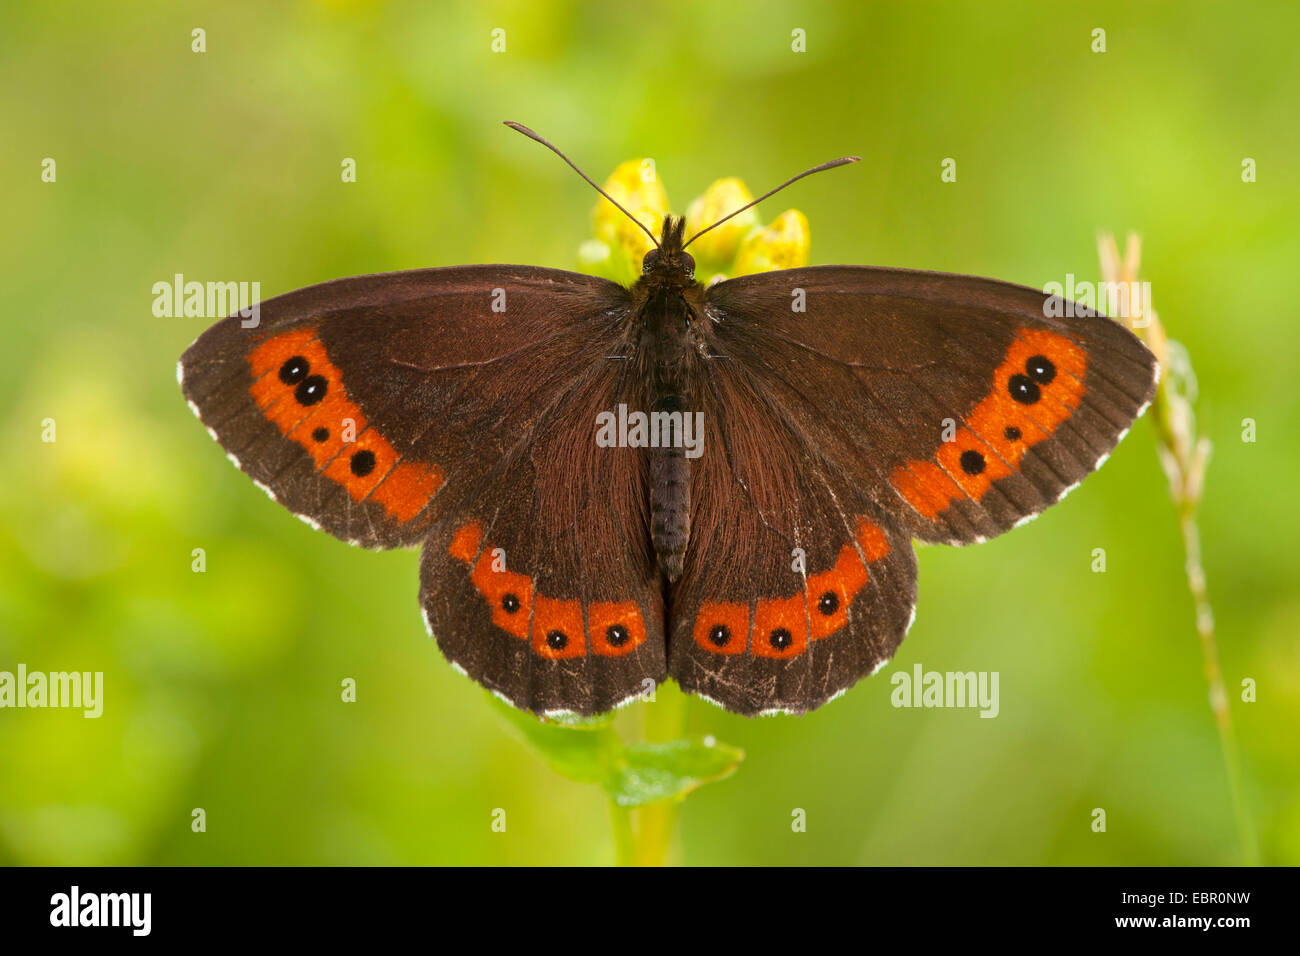 Arran brown, Ringlet butterfly (Erebia ligea), full-length portrait, Germany, Thueringen, Rhoen - Stock Image